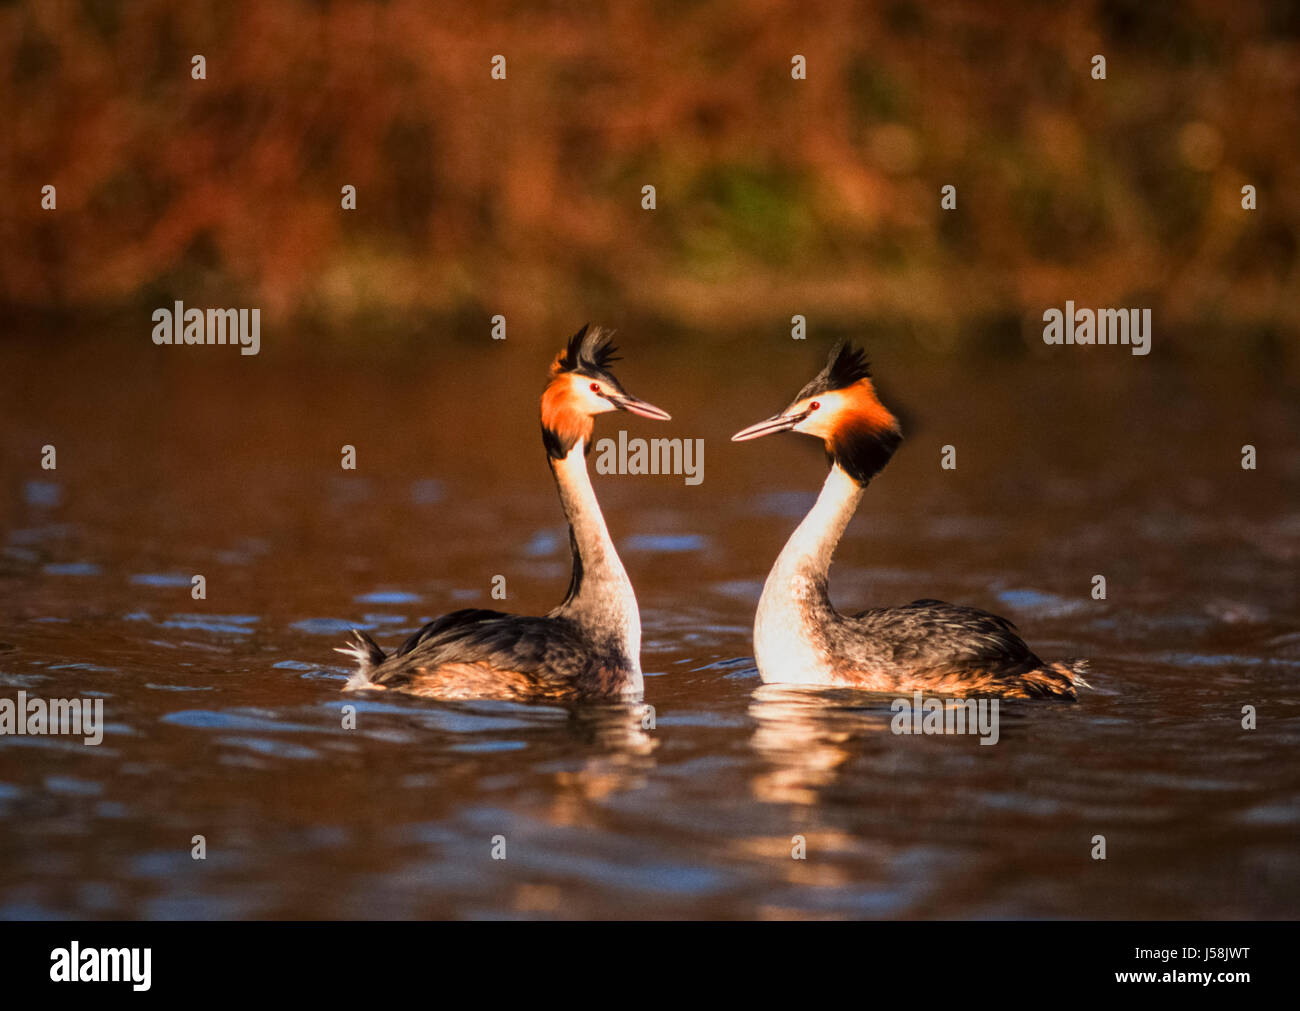 Great Crested Grebe, Podiceps cristatus, Regents Park, London, United Kingdom Stock Photo